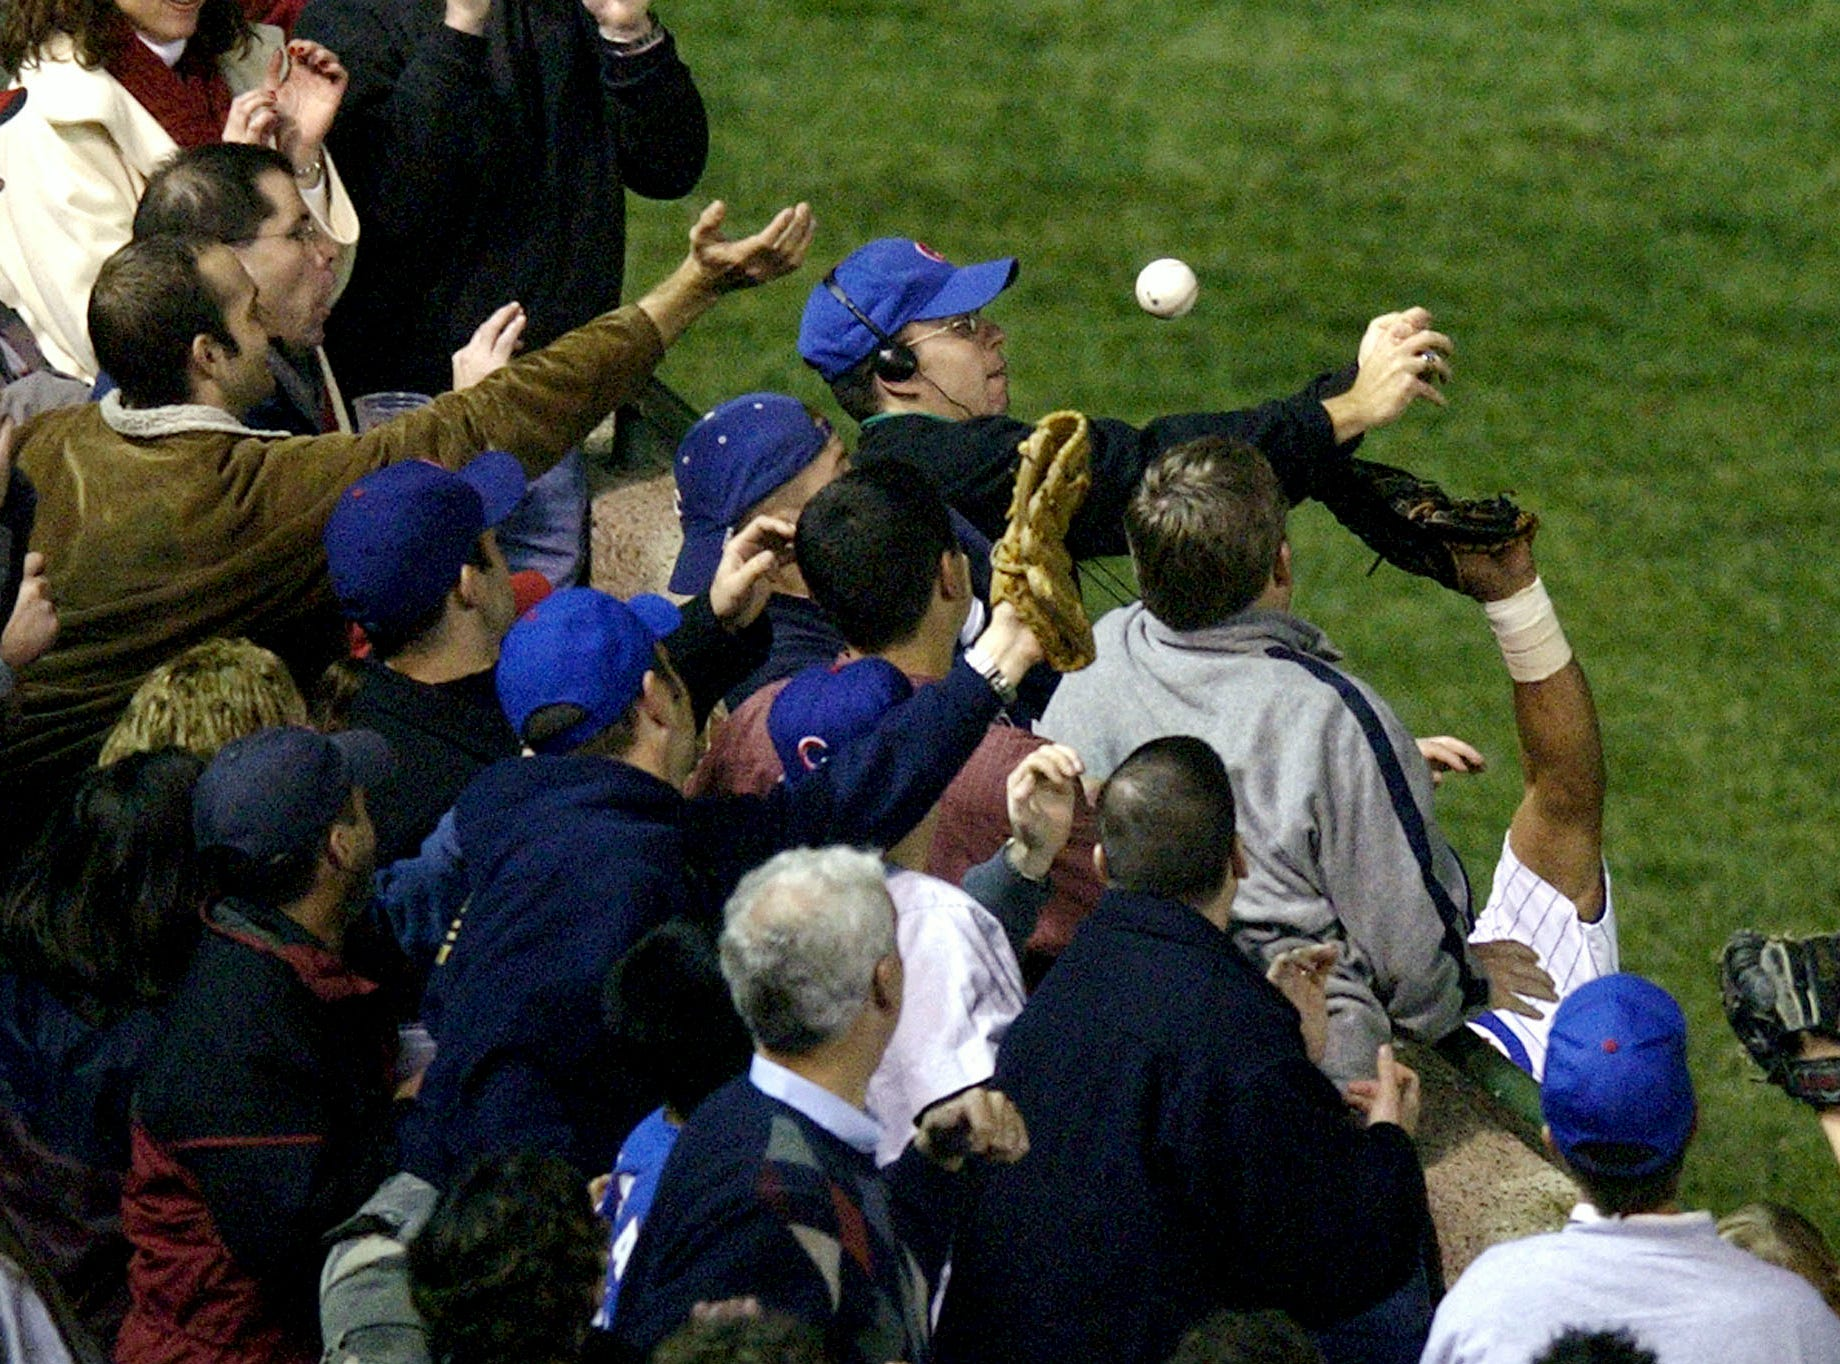 2003 NLCS Game 6: In the eighth inning, Cubs fan Steve Bartman prevented Moises Alou from making a play on a foul ball. The inning unraveled for the Cubs, who would go on to lose Game 7 after taking a 3-1 series lead.